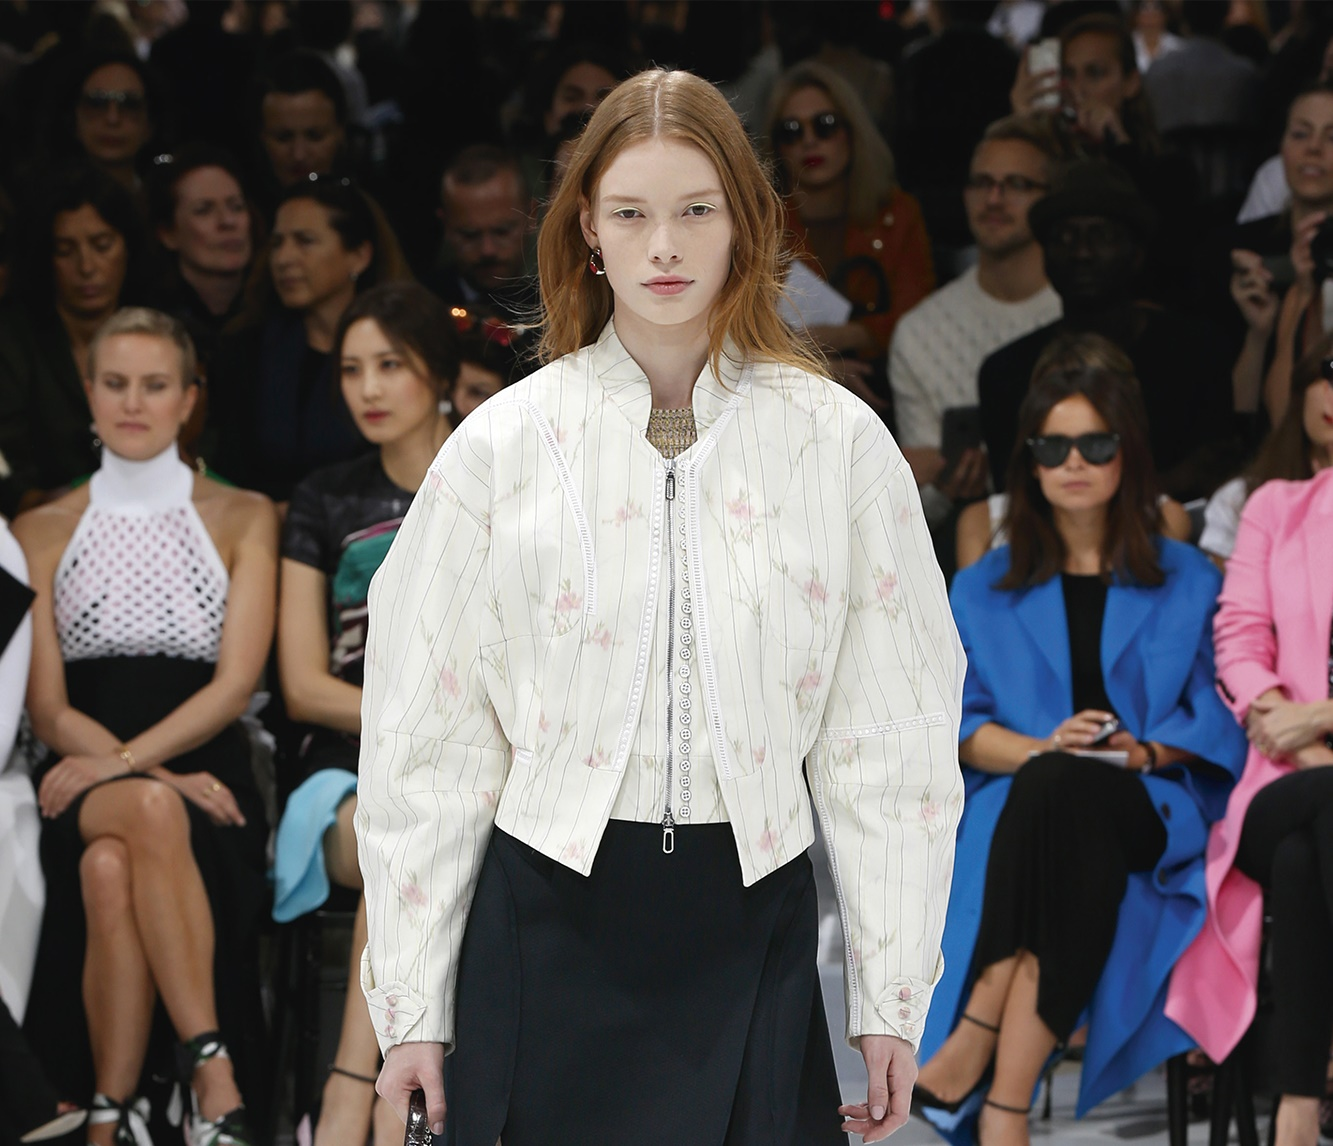 christian-dior-spring-summer-RTW-collection (10)